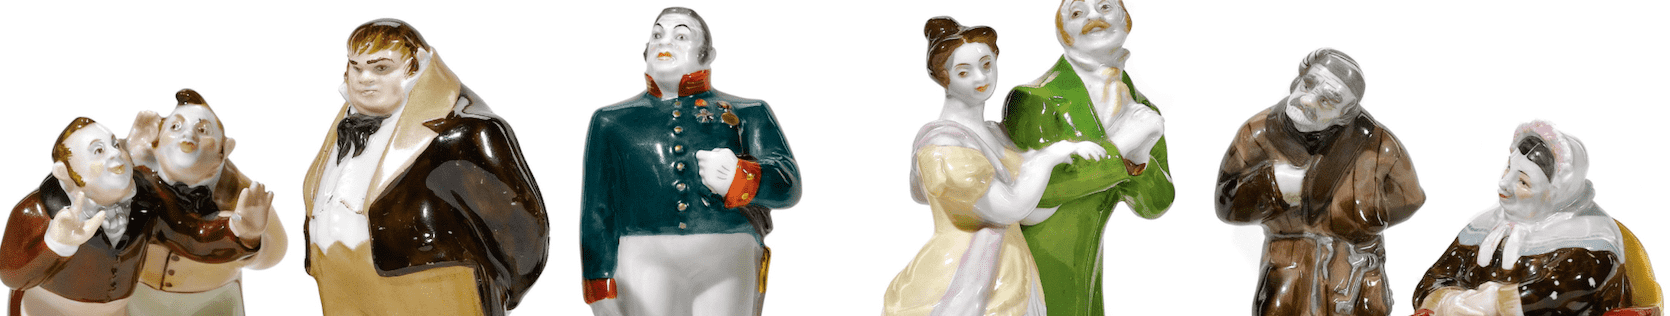 antique porcelain figurines